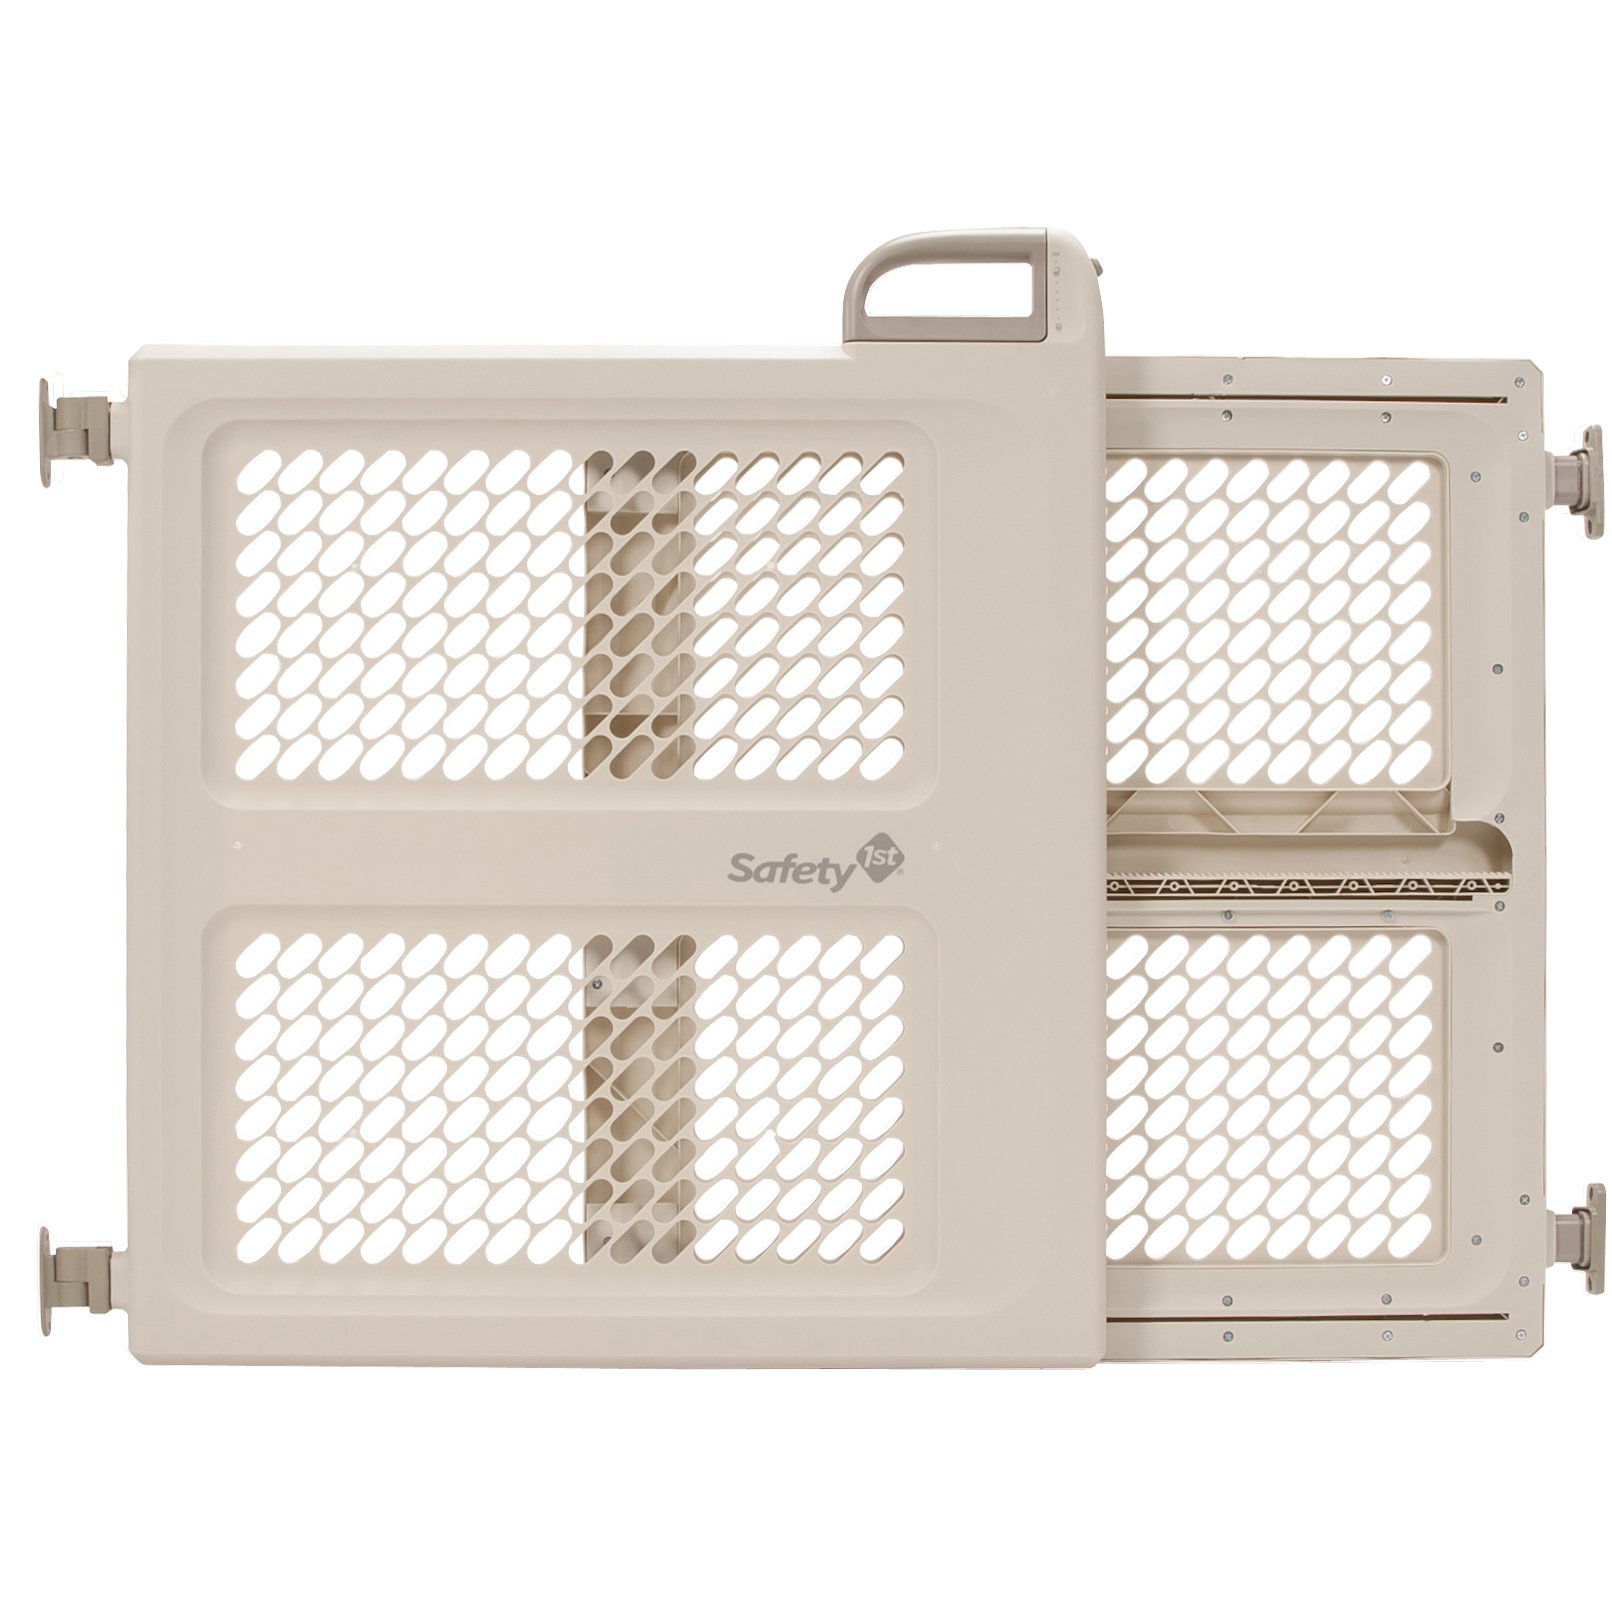 Safety 1st Pressure Mount Lift, Lock and Swing Gate, Fits Spaces between 28'' and 42'' Wide by Safety 1st